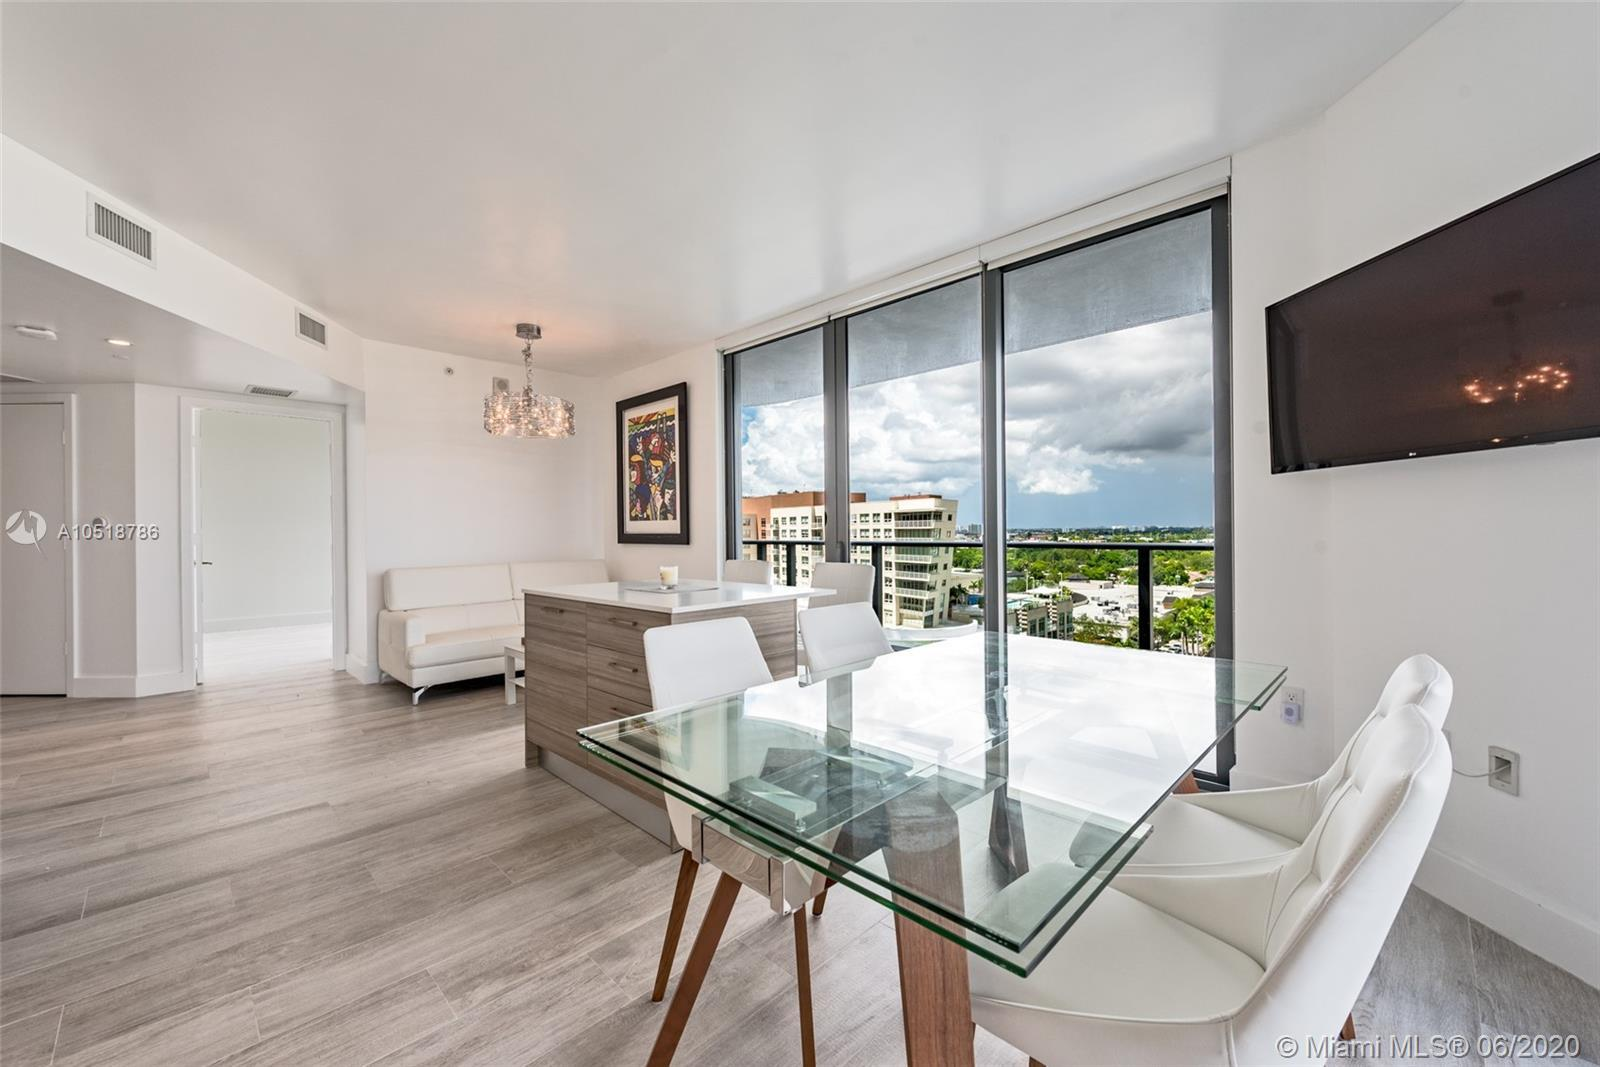 This chic new urban living residence features beautiful sunset and skyline views. NEST thermostat, R